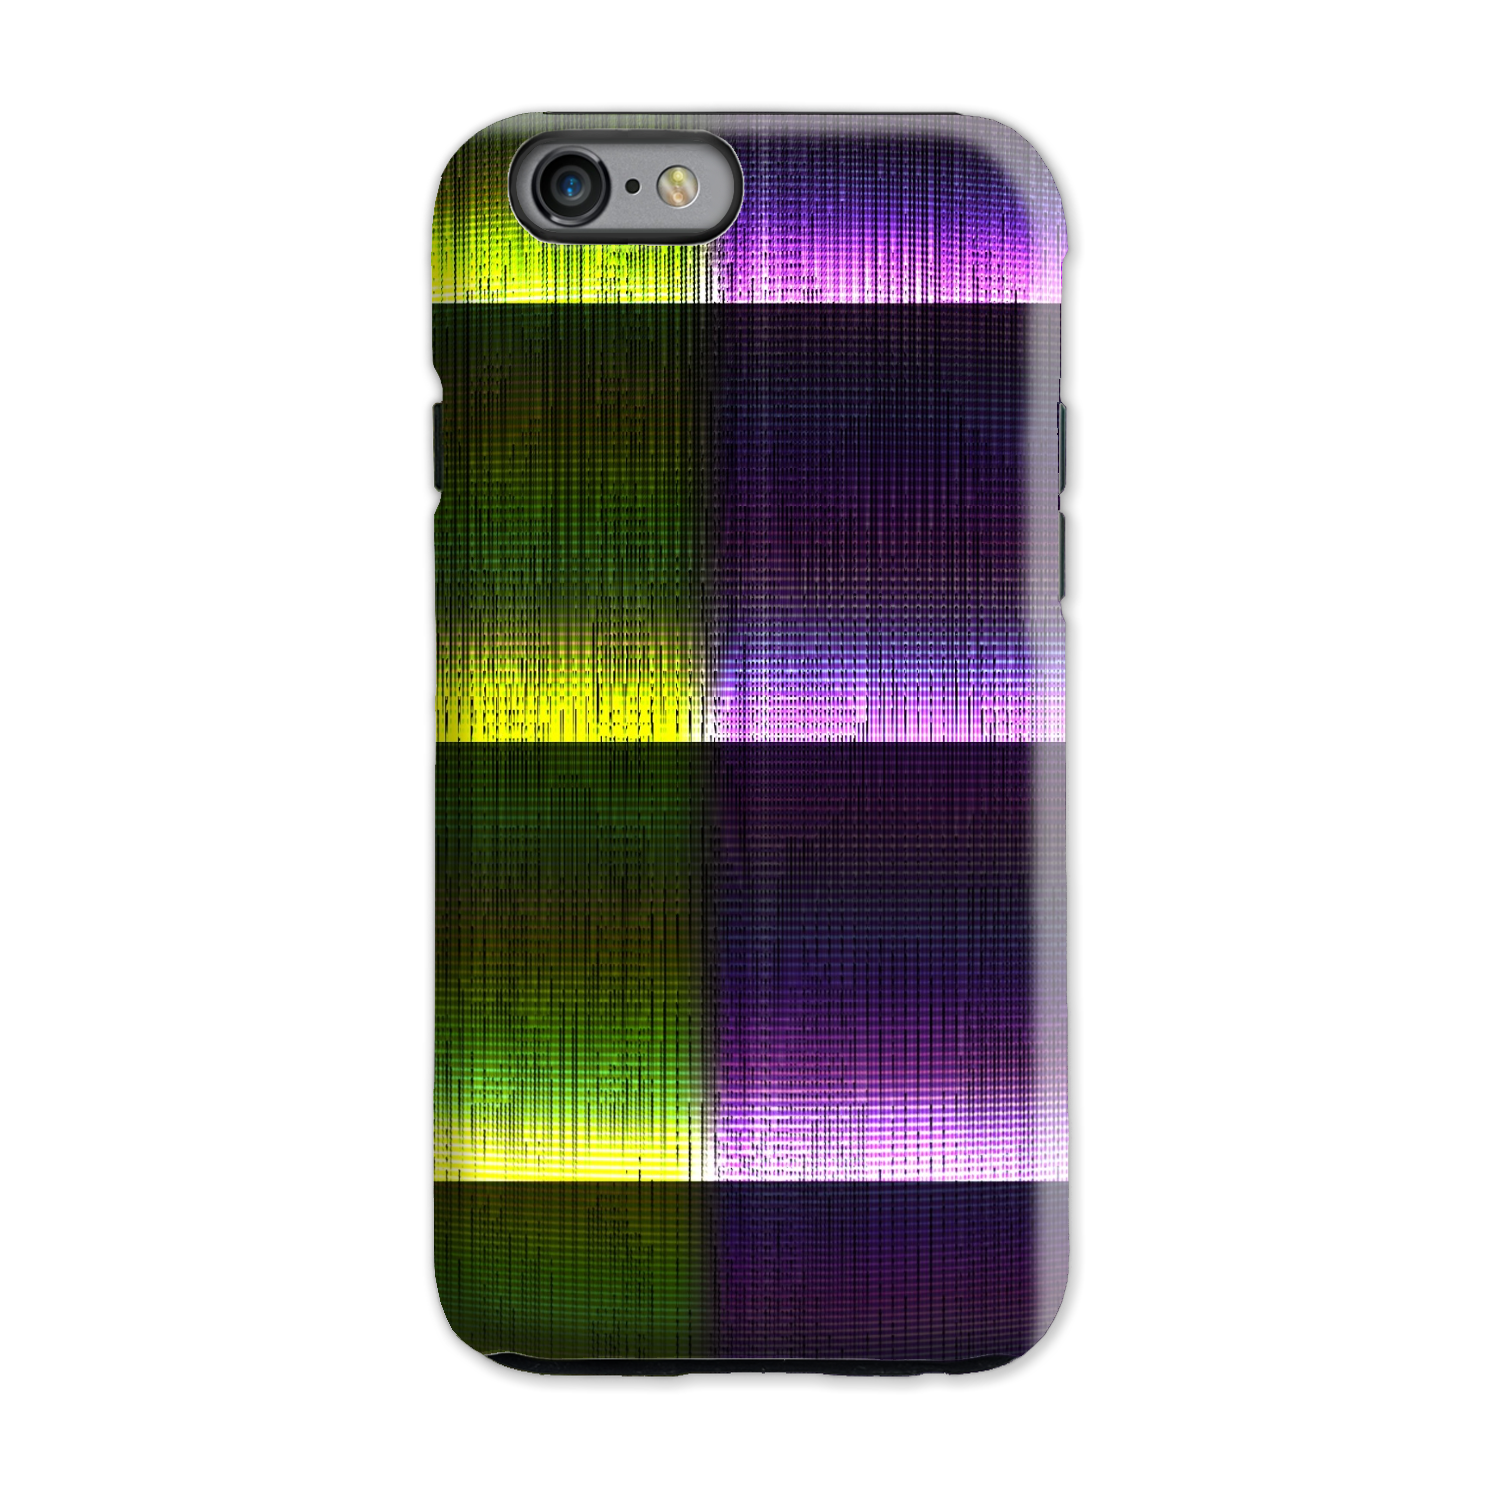 Wavy - Tough Phone Cases - Indigo G - Indigo G